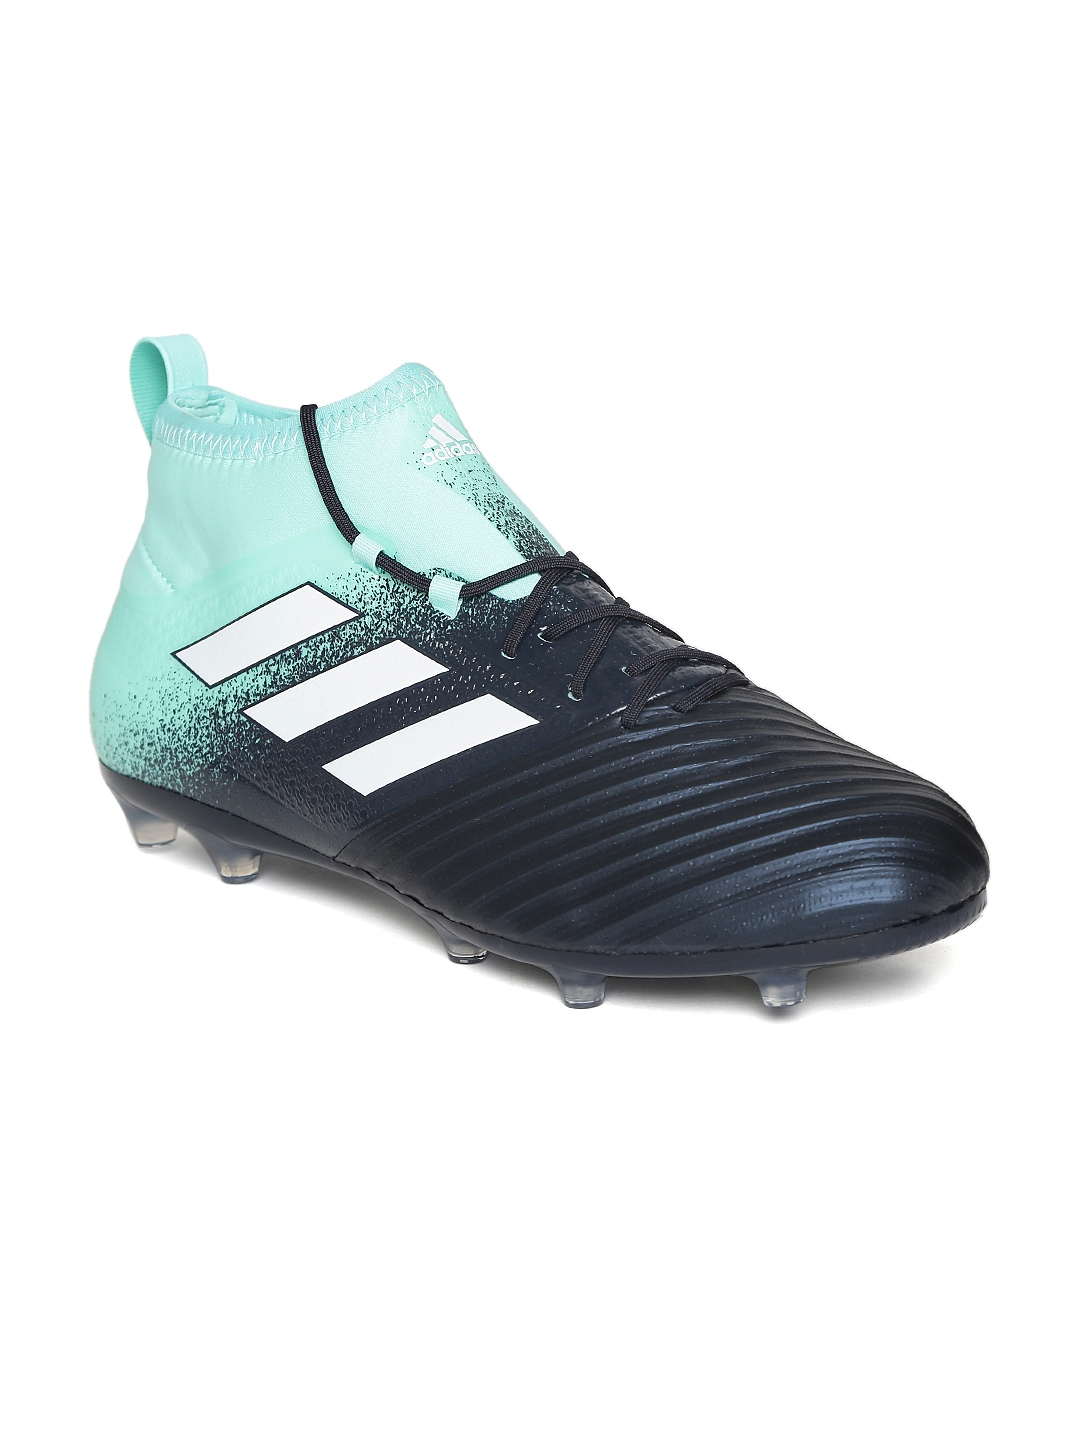 62150bc6e551 ADIDAS Men Navy   Mint Green Ace 17.2 Firm Ground Cleats Mid-Top Football  Shoes